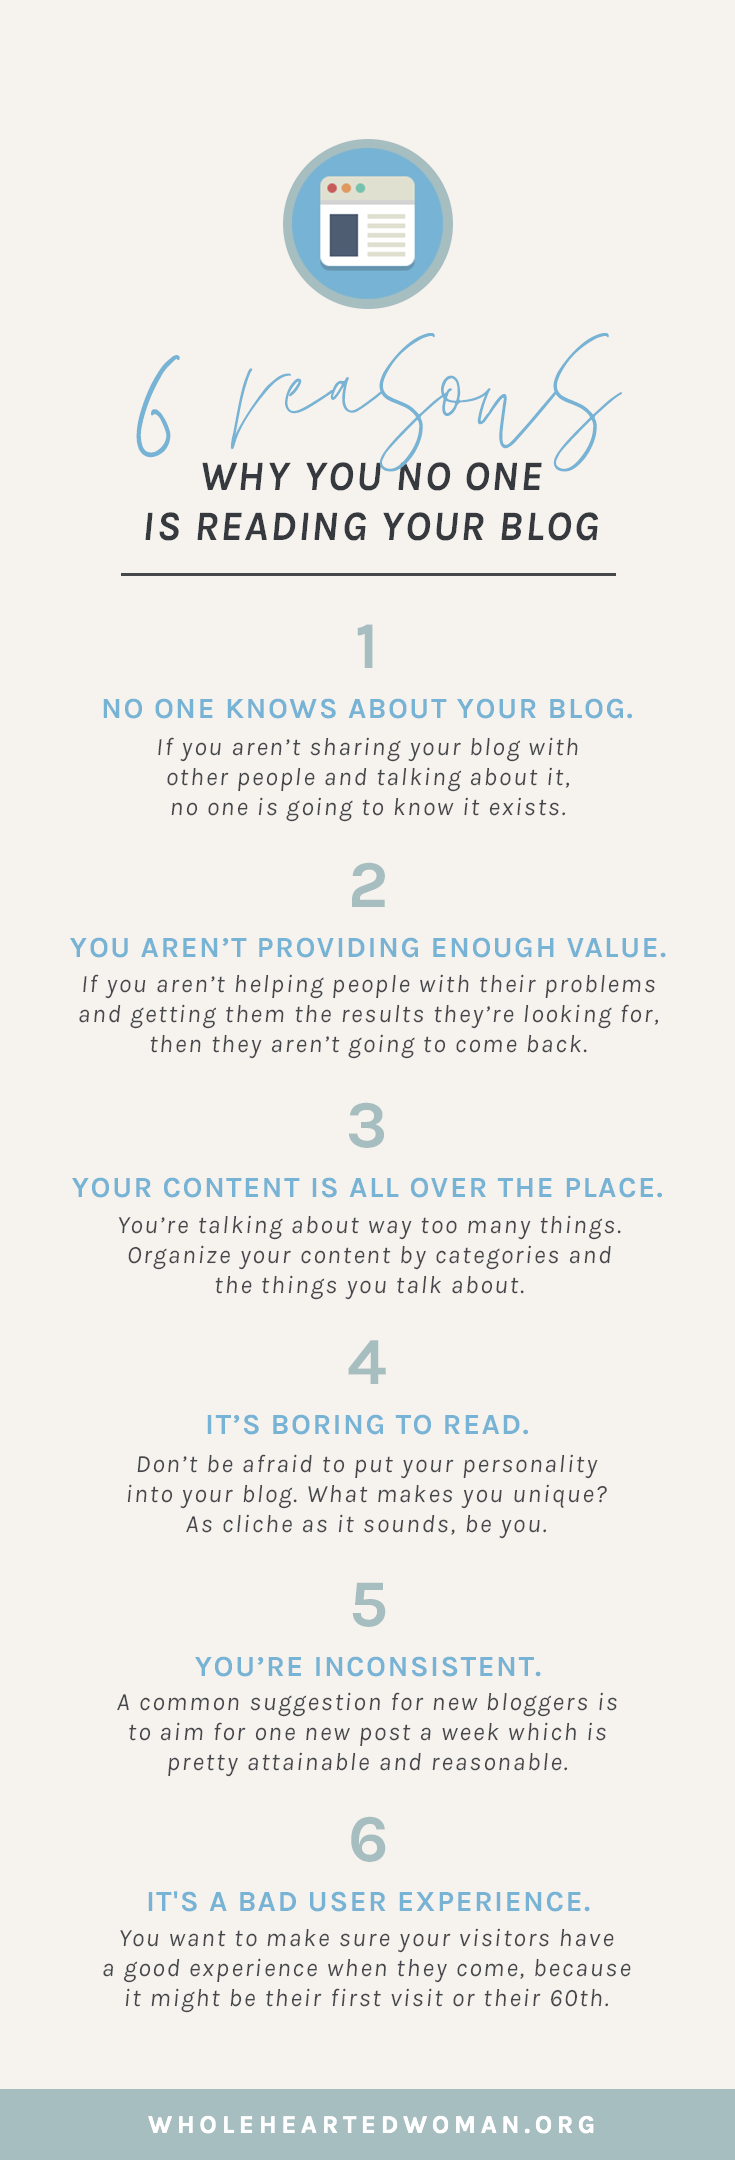 6 Reasons Why No One Is Reading Your Blog | Why Is No One Reading My Blog | How To Get More People To Read Your Blog | How To Make Your Blog Better | Blogging Advice | Personal Growth and Development | How To Grow Your Blog | Boost Your Blog Traffic | 6 Ways To Make Your Blog Better | Wholehearted Woman | #personalgrowth | #blogging | #blog | #personalbranding | #branding